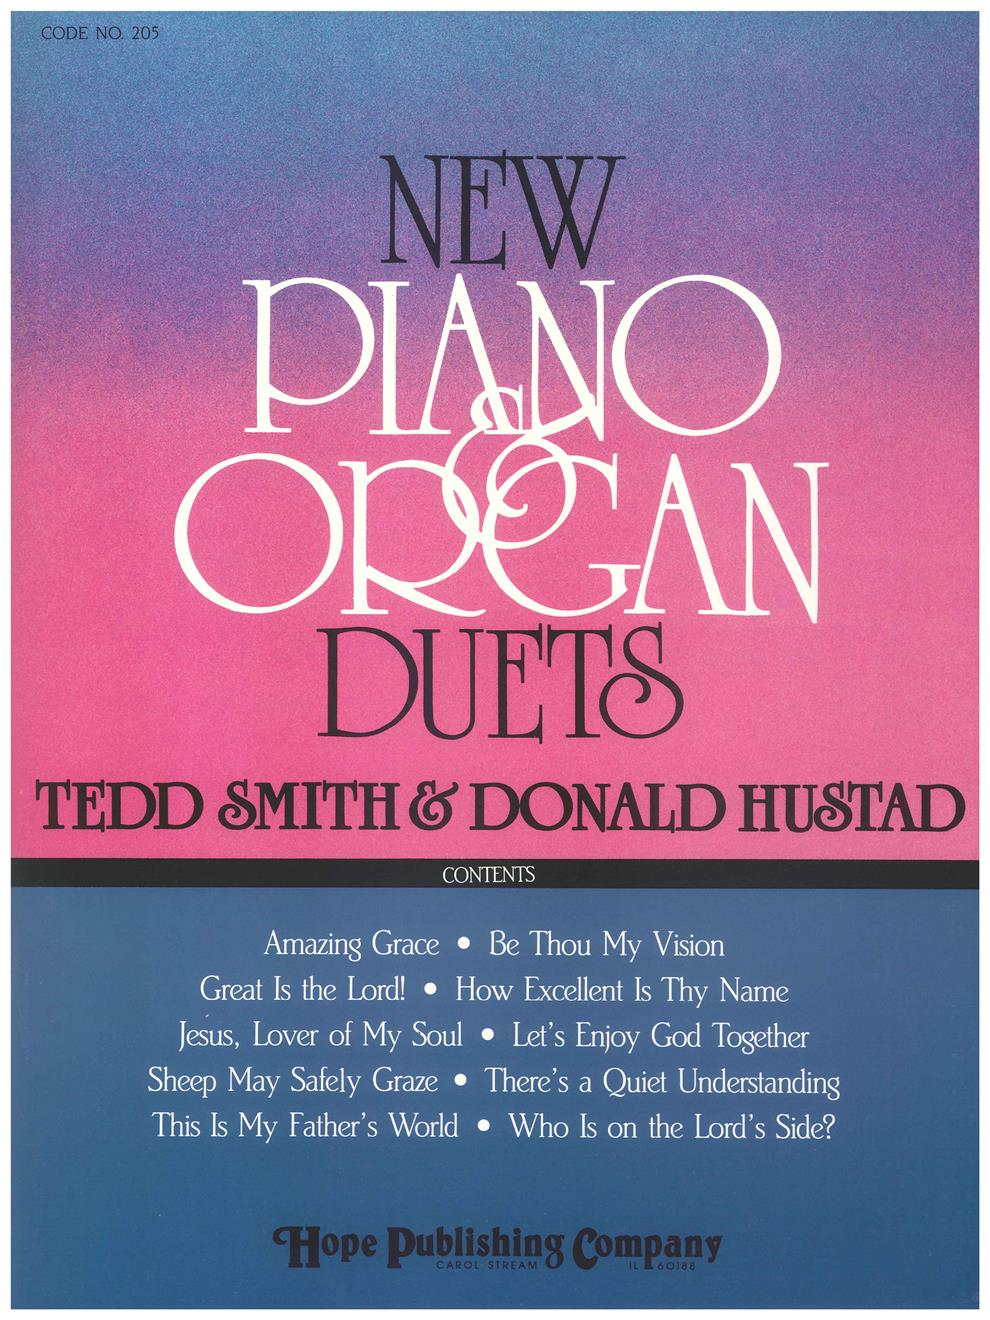 NEW PIANO AND ORGAN DUETS - Cover Image